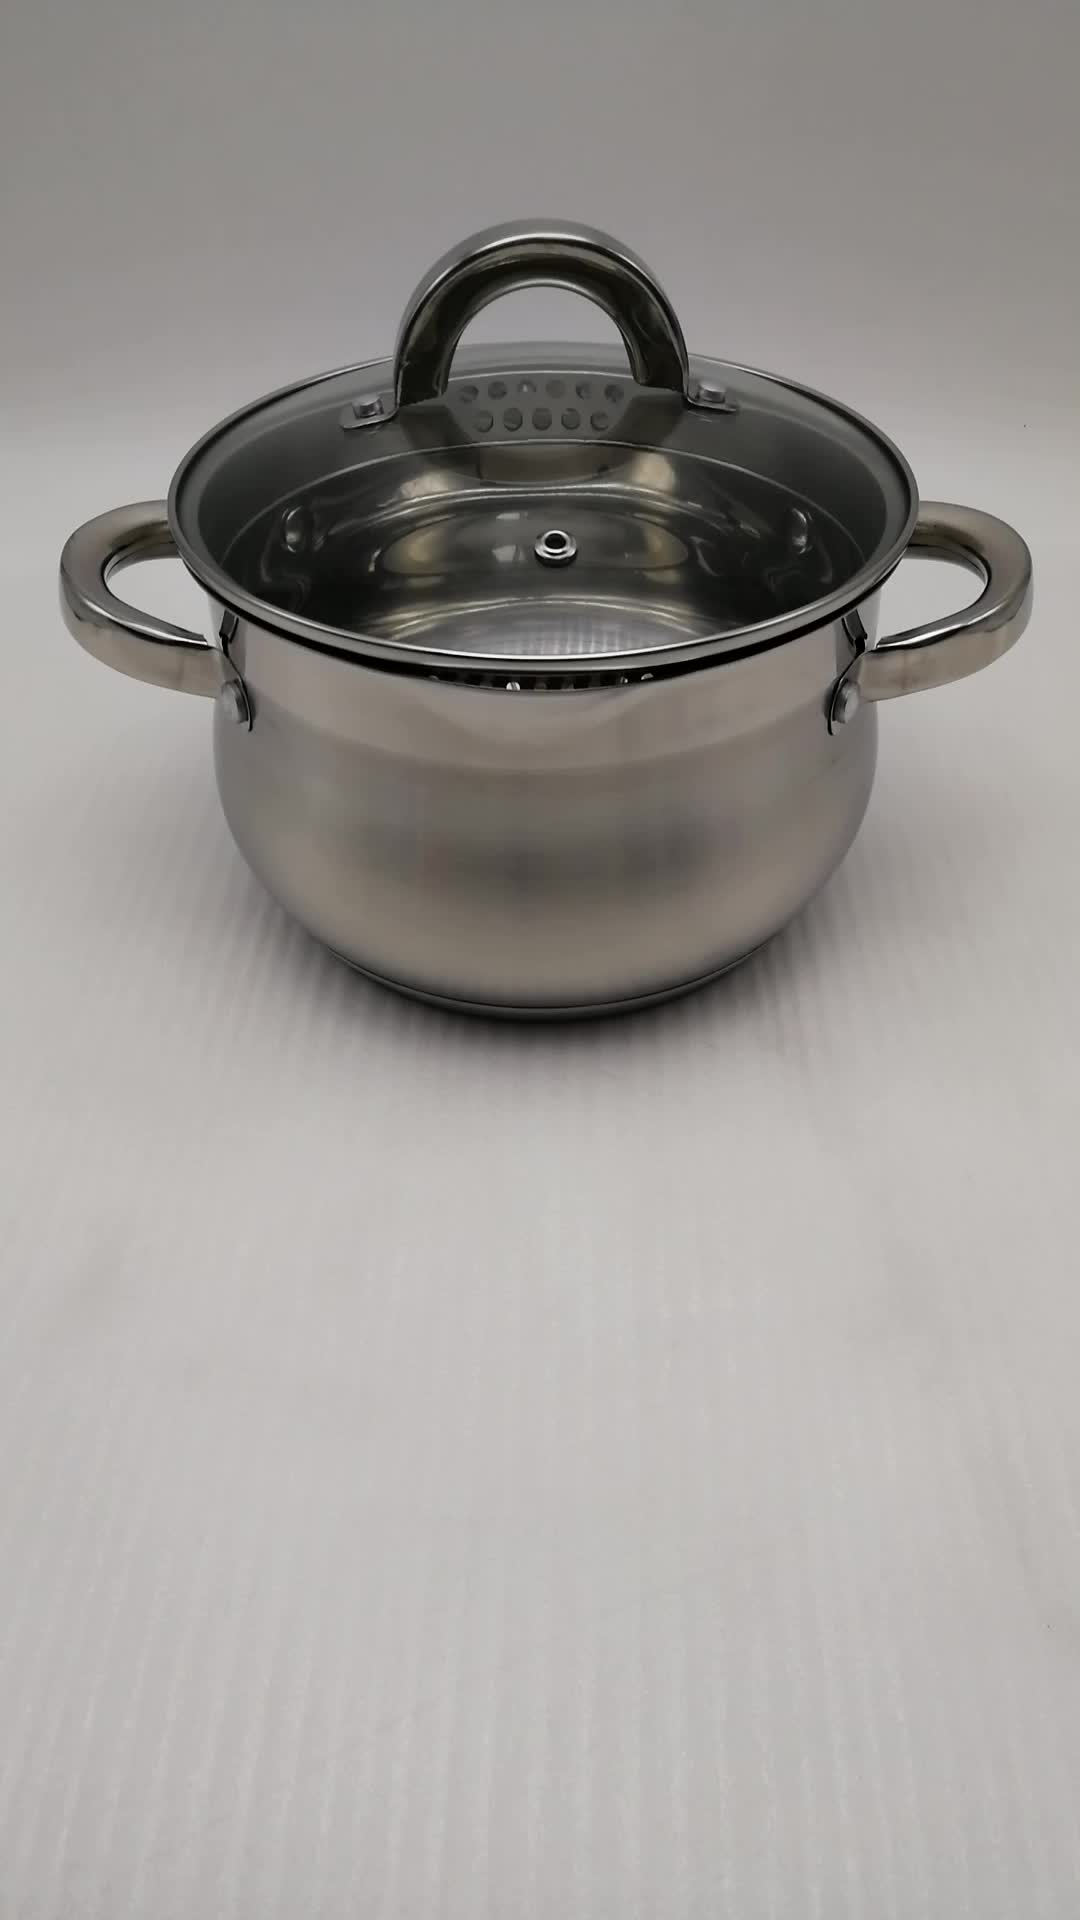 Stainless steel belly shape casserole with pouring lips